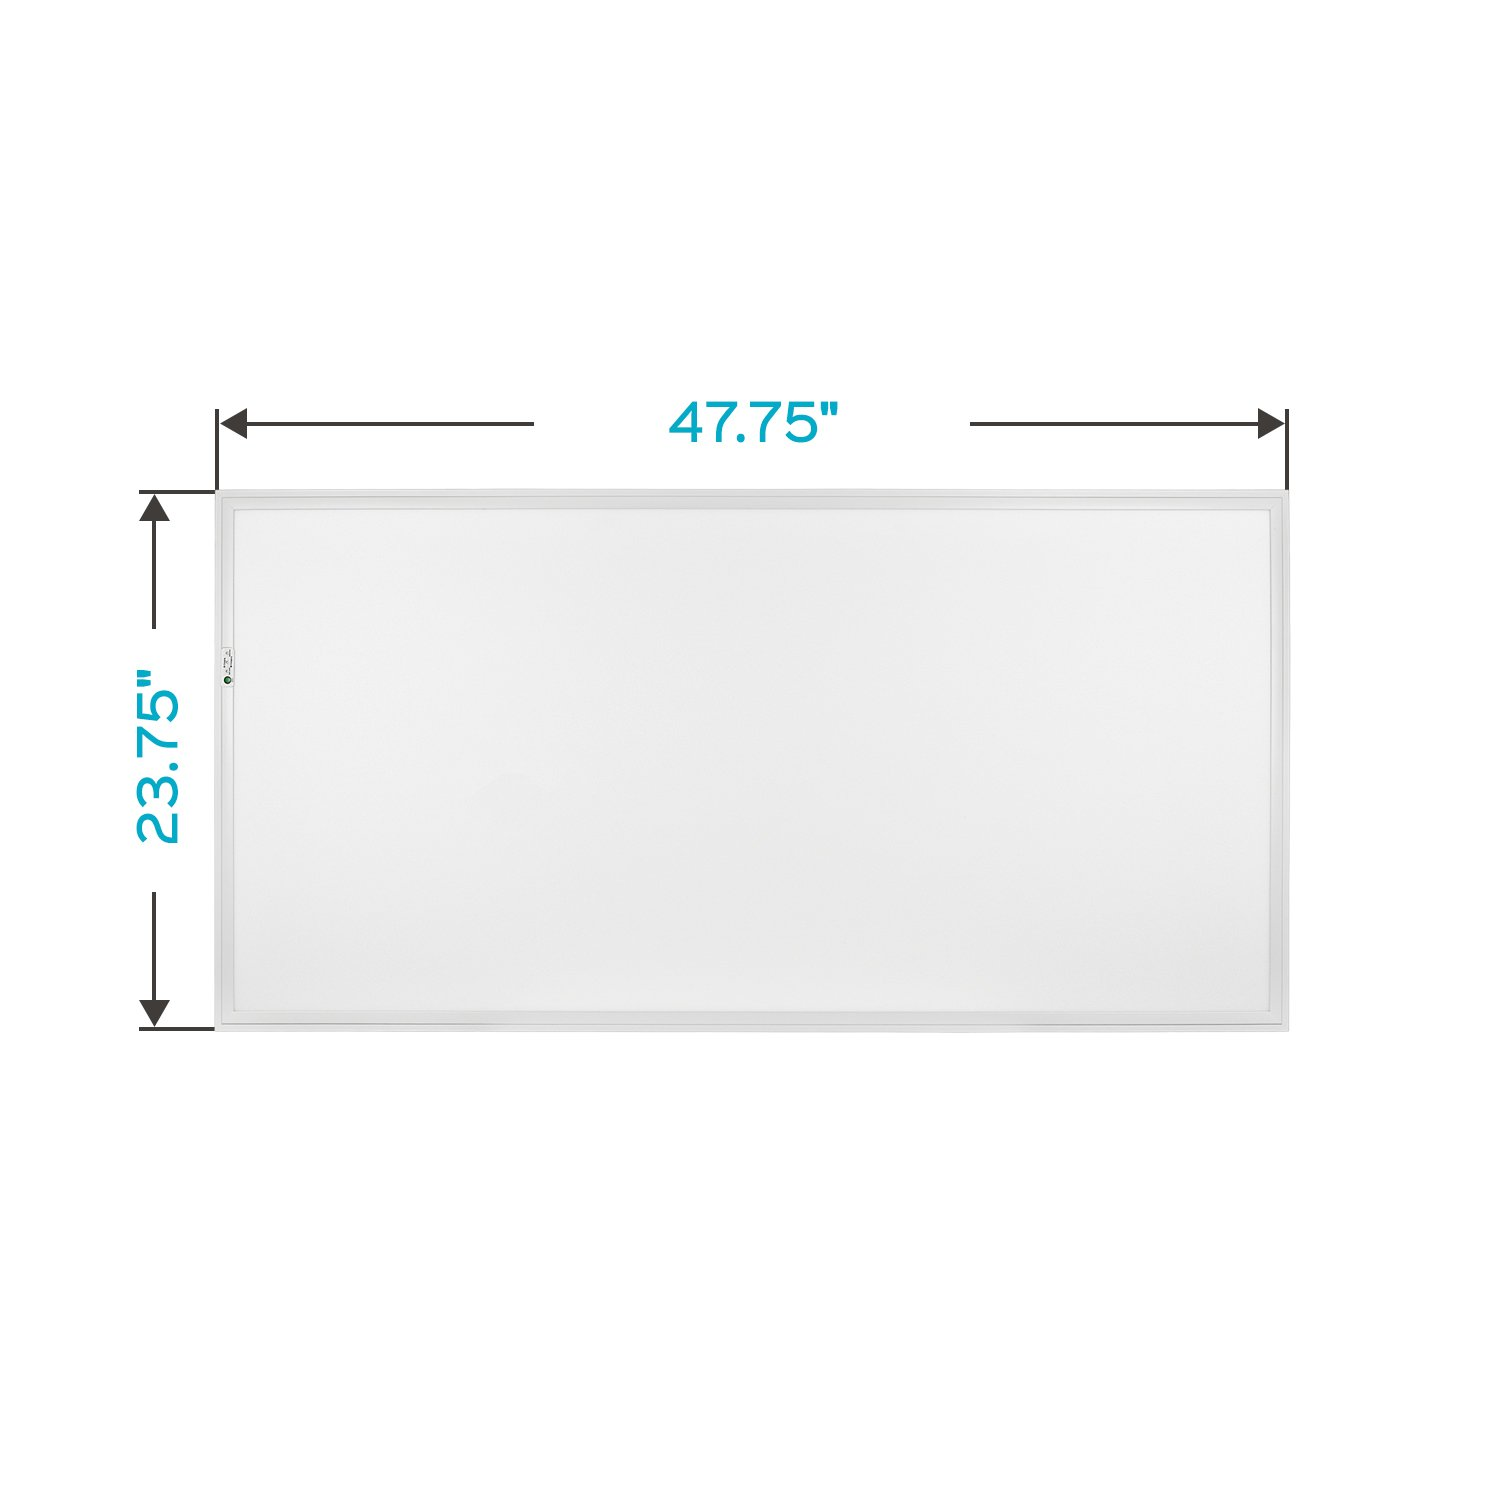 Luxrite 2x4 LED Flat Panel Light with Emergency Battery Backup, 60W 3500K Natural White, 0-10V Dimmable, 6630 Lumens, LED Drop Ceiling Lights, 100-277V, DLC and UL Listed, Ultra Thin Edge-Lit by LUXRITE (Image #5)